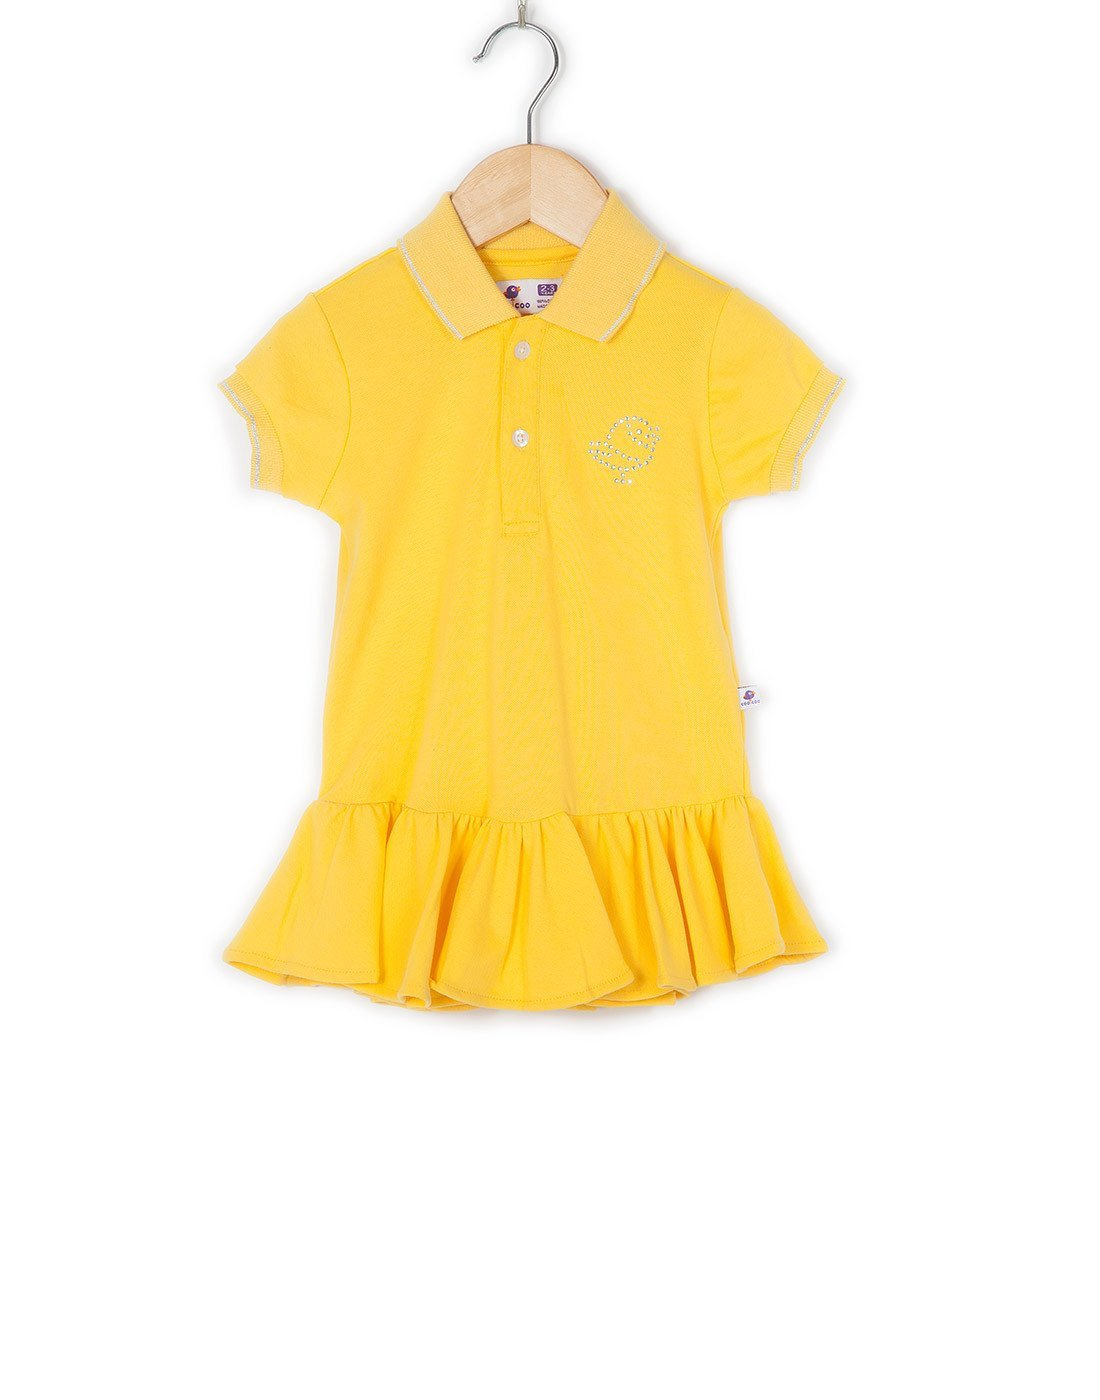 COO COO Polo Dress with Diamonte Logo - Yellow